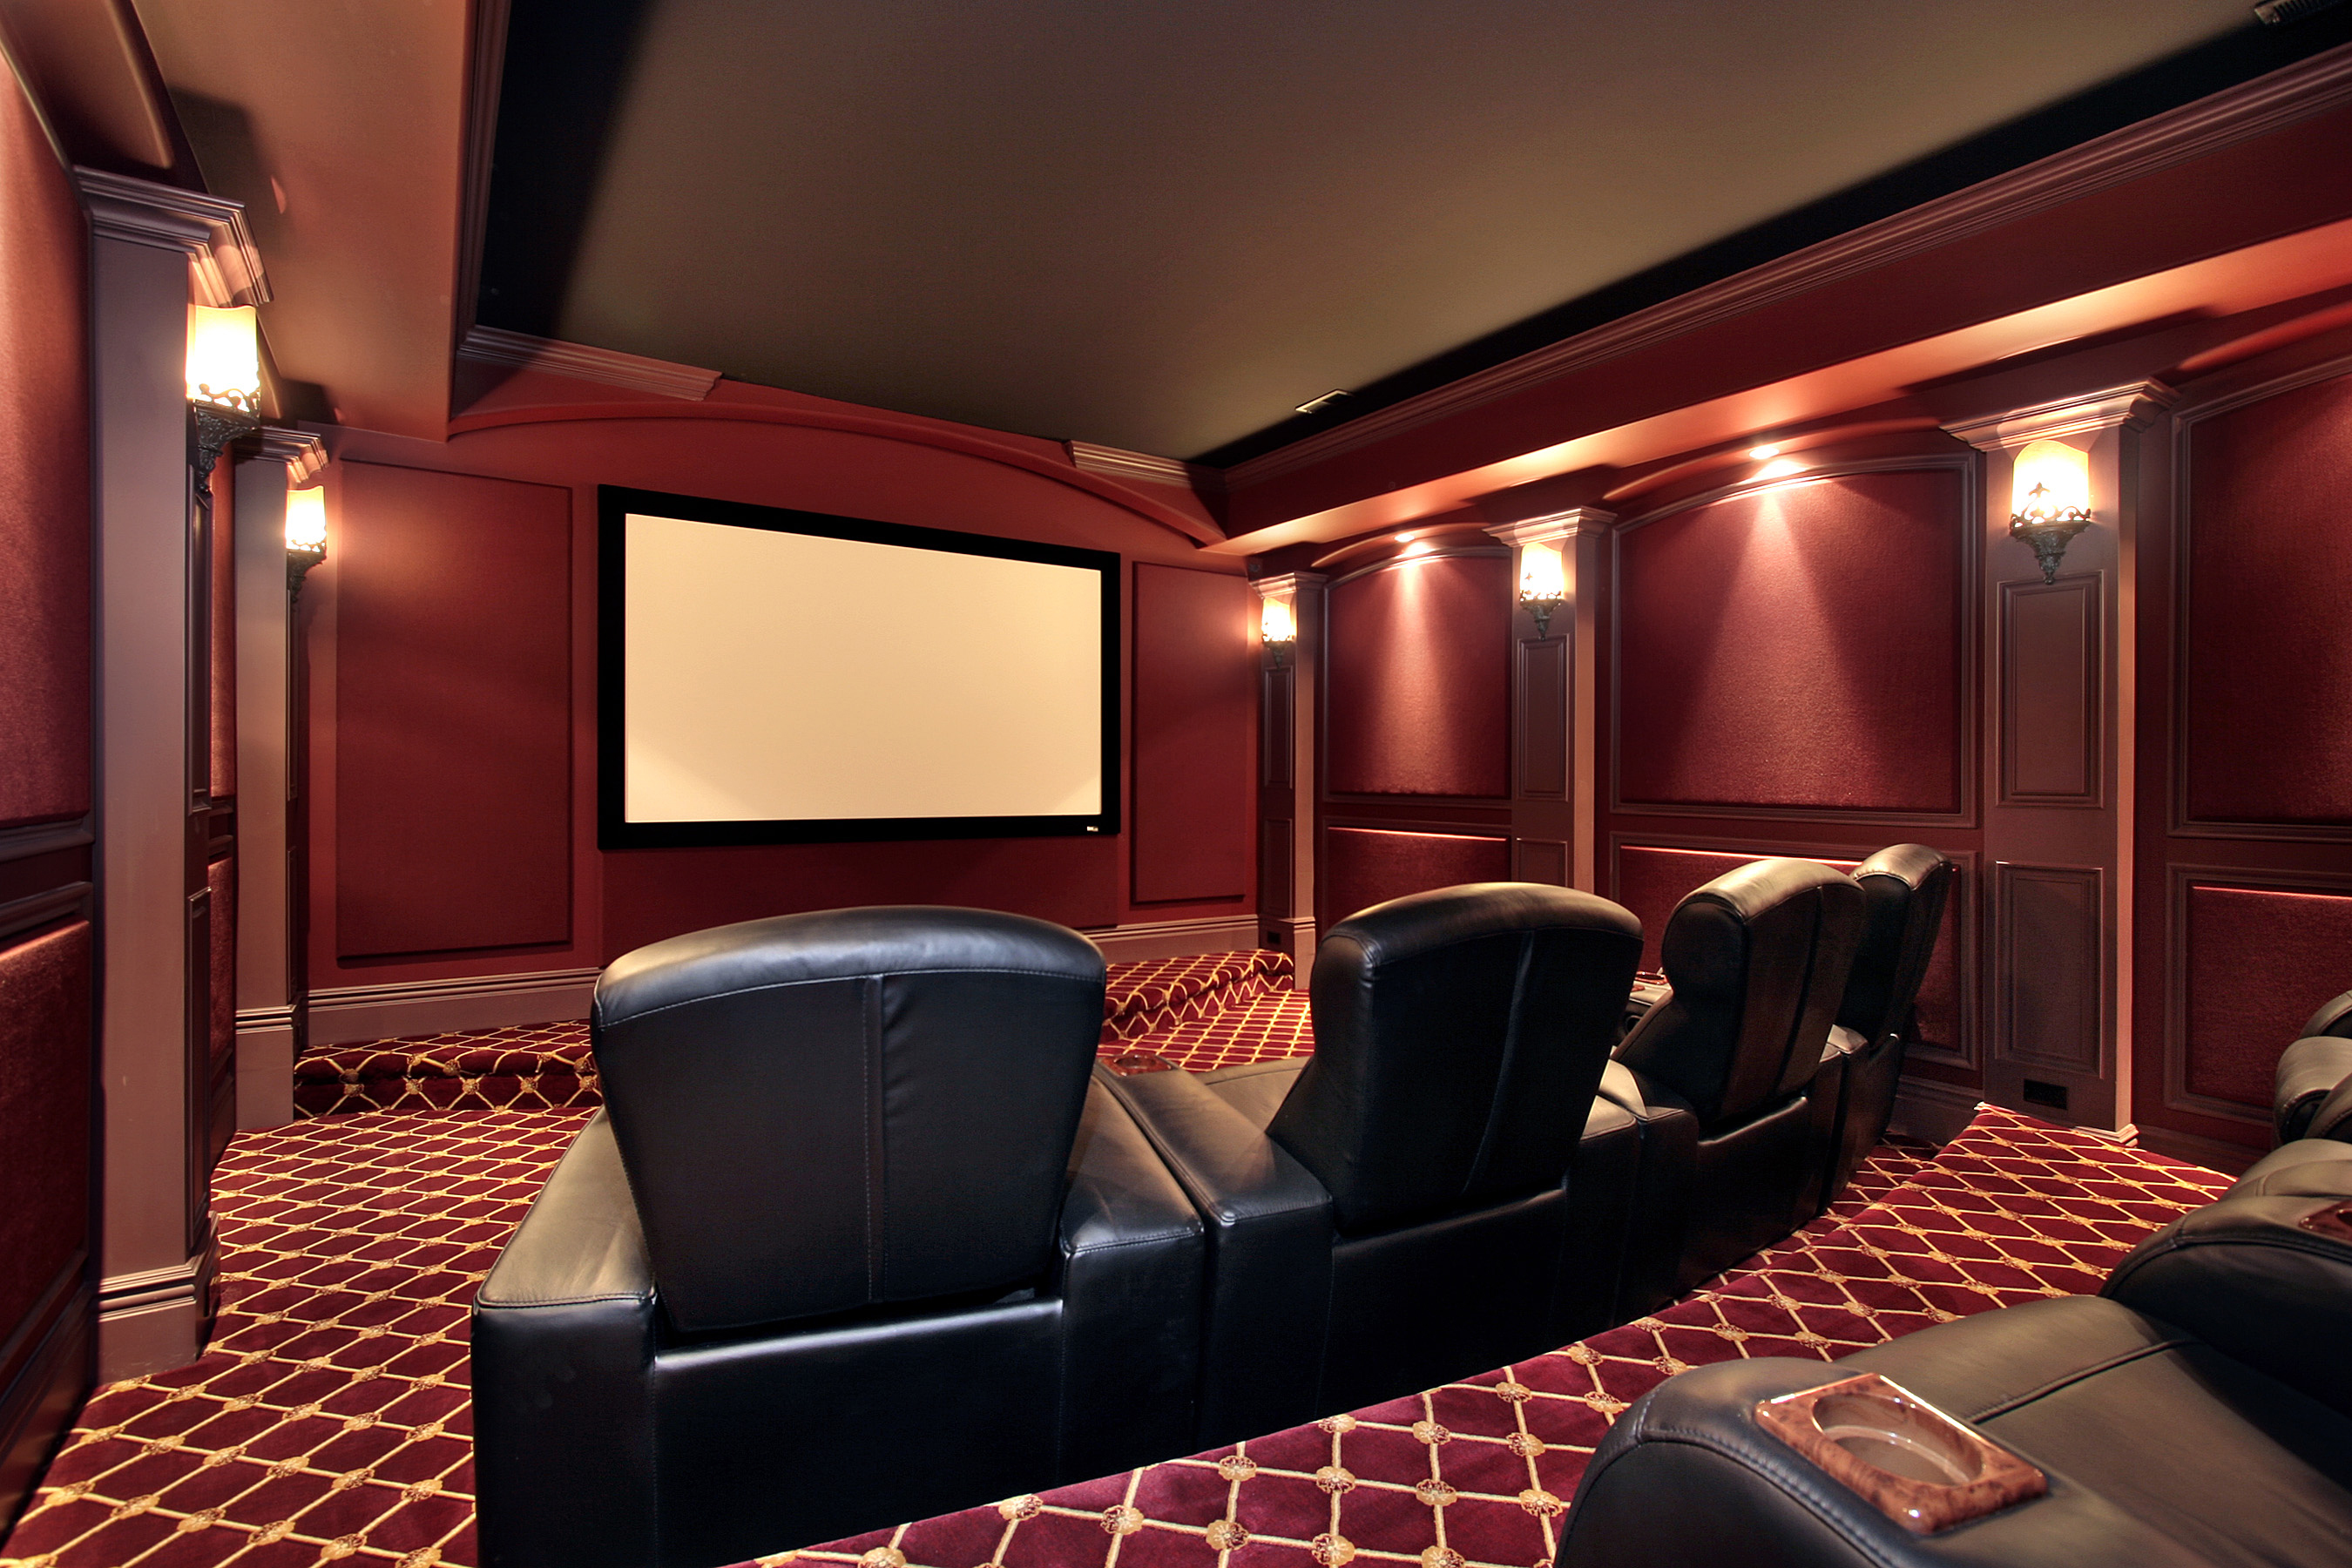 bigstock-Theater-In-Luxury-Home-5194114